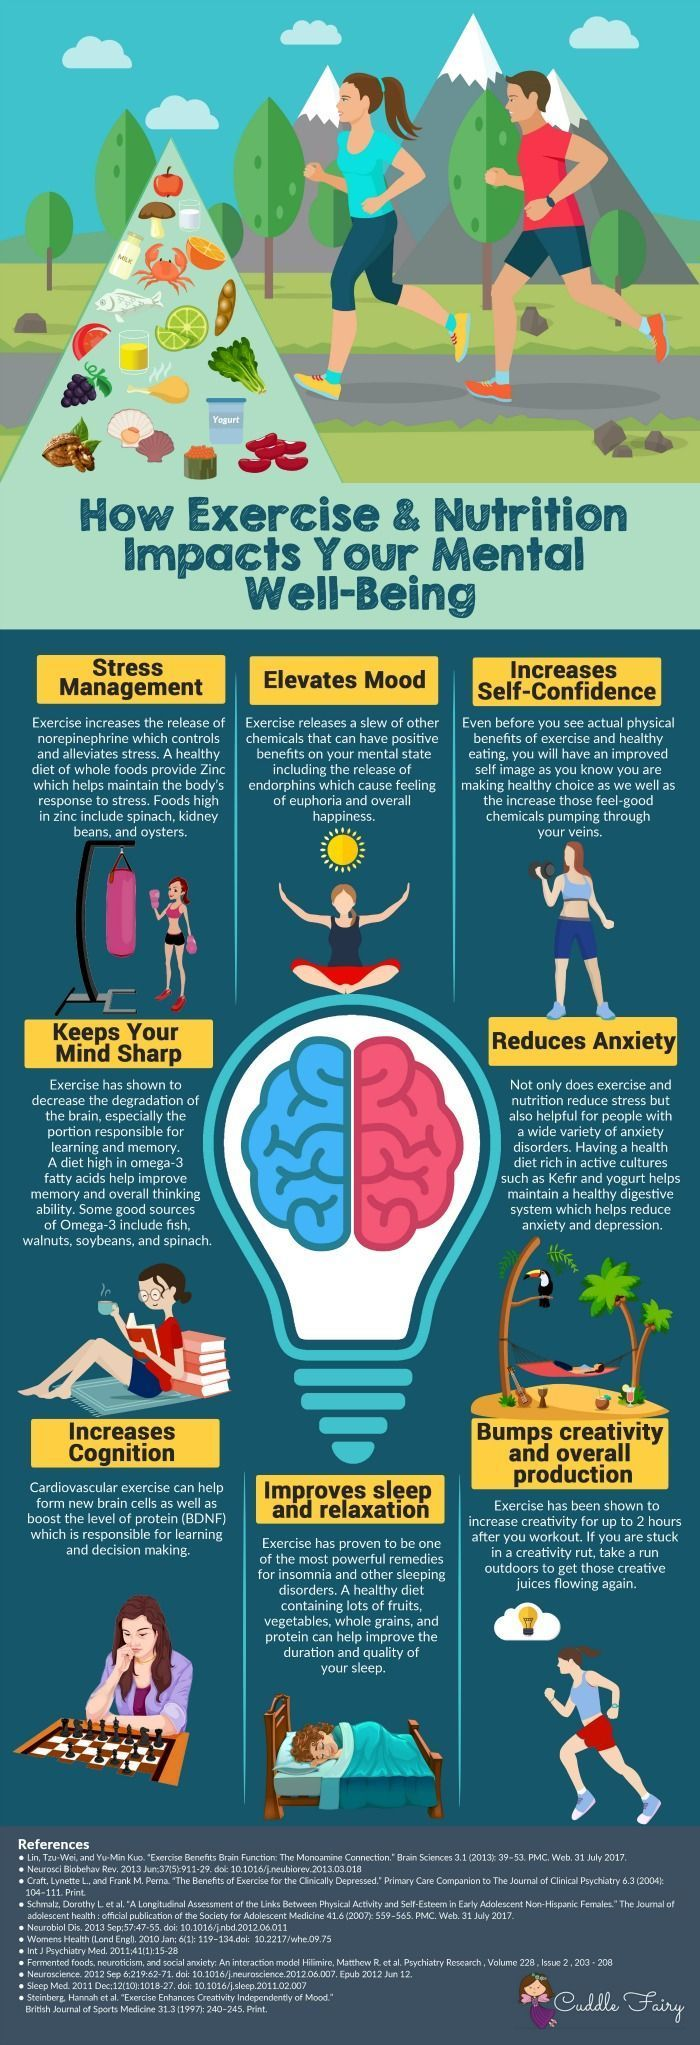 How Exercise & Nutrition Impacts Your Mental Well-Being #Fitness #Infographic #Health